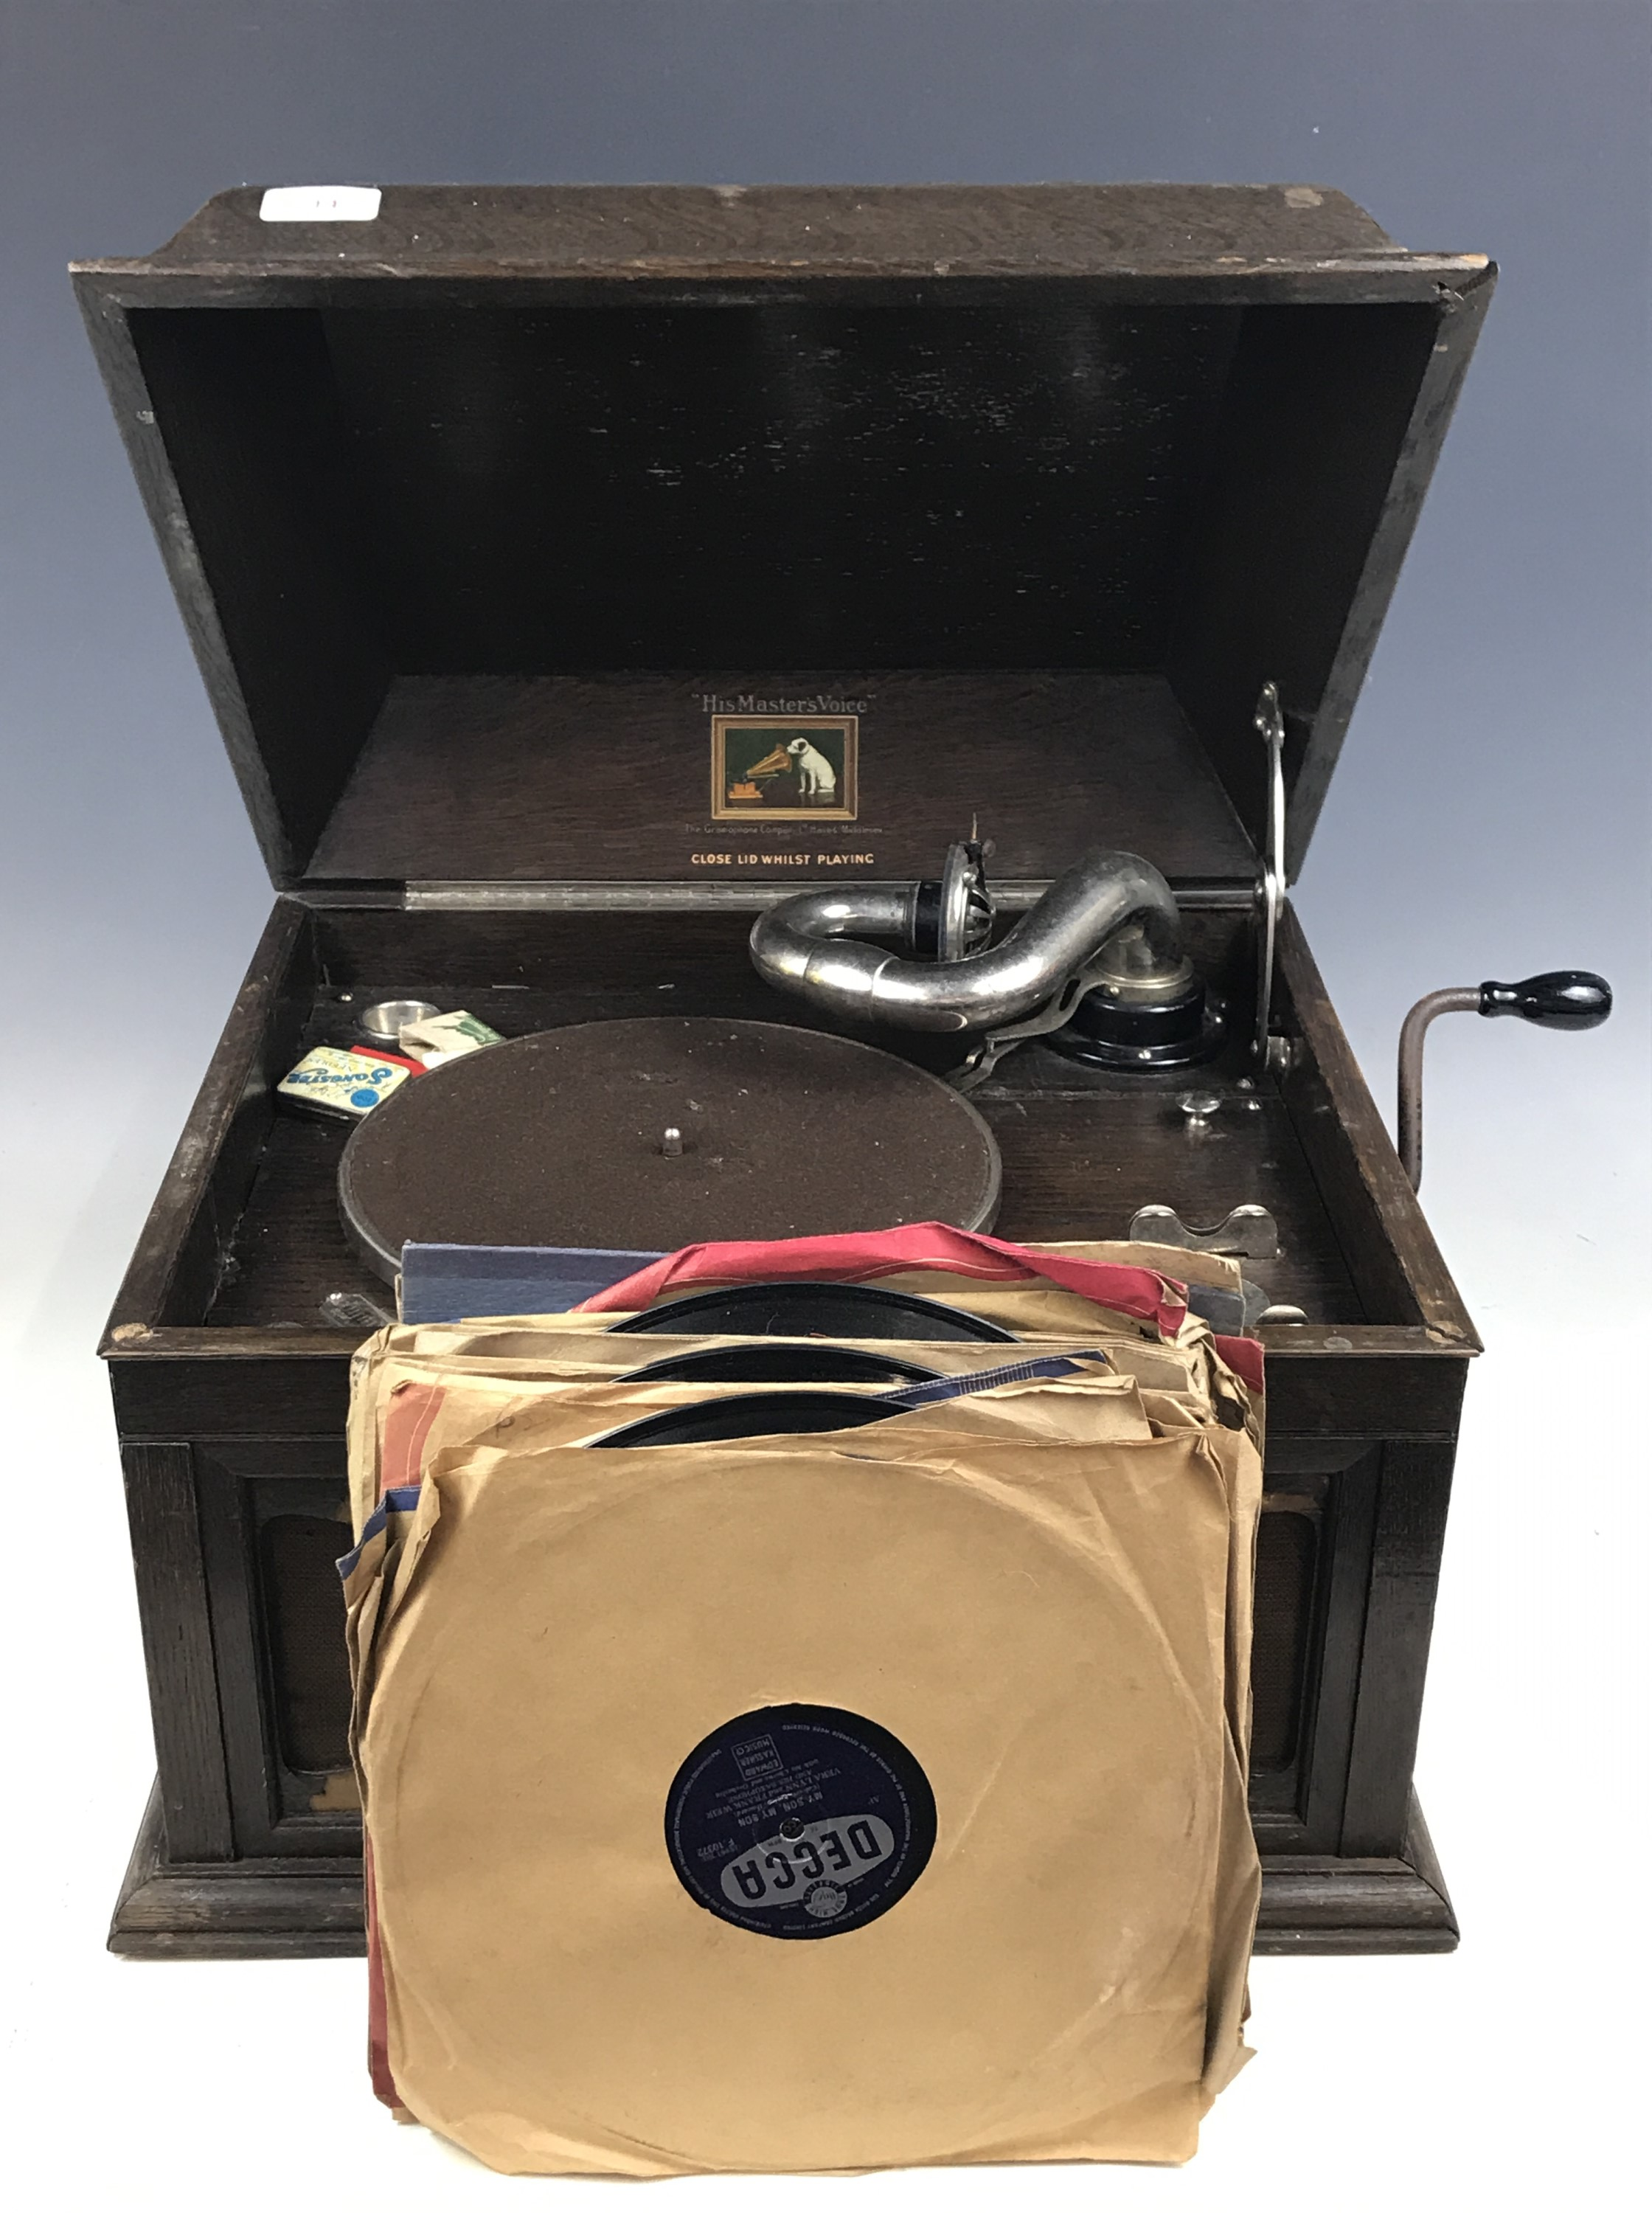 Lot 14 - A 'His Master's Voice' gramophone together with records